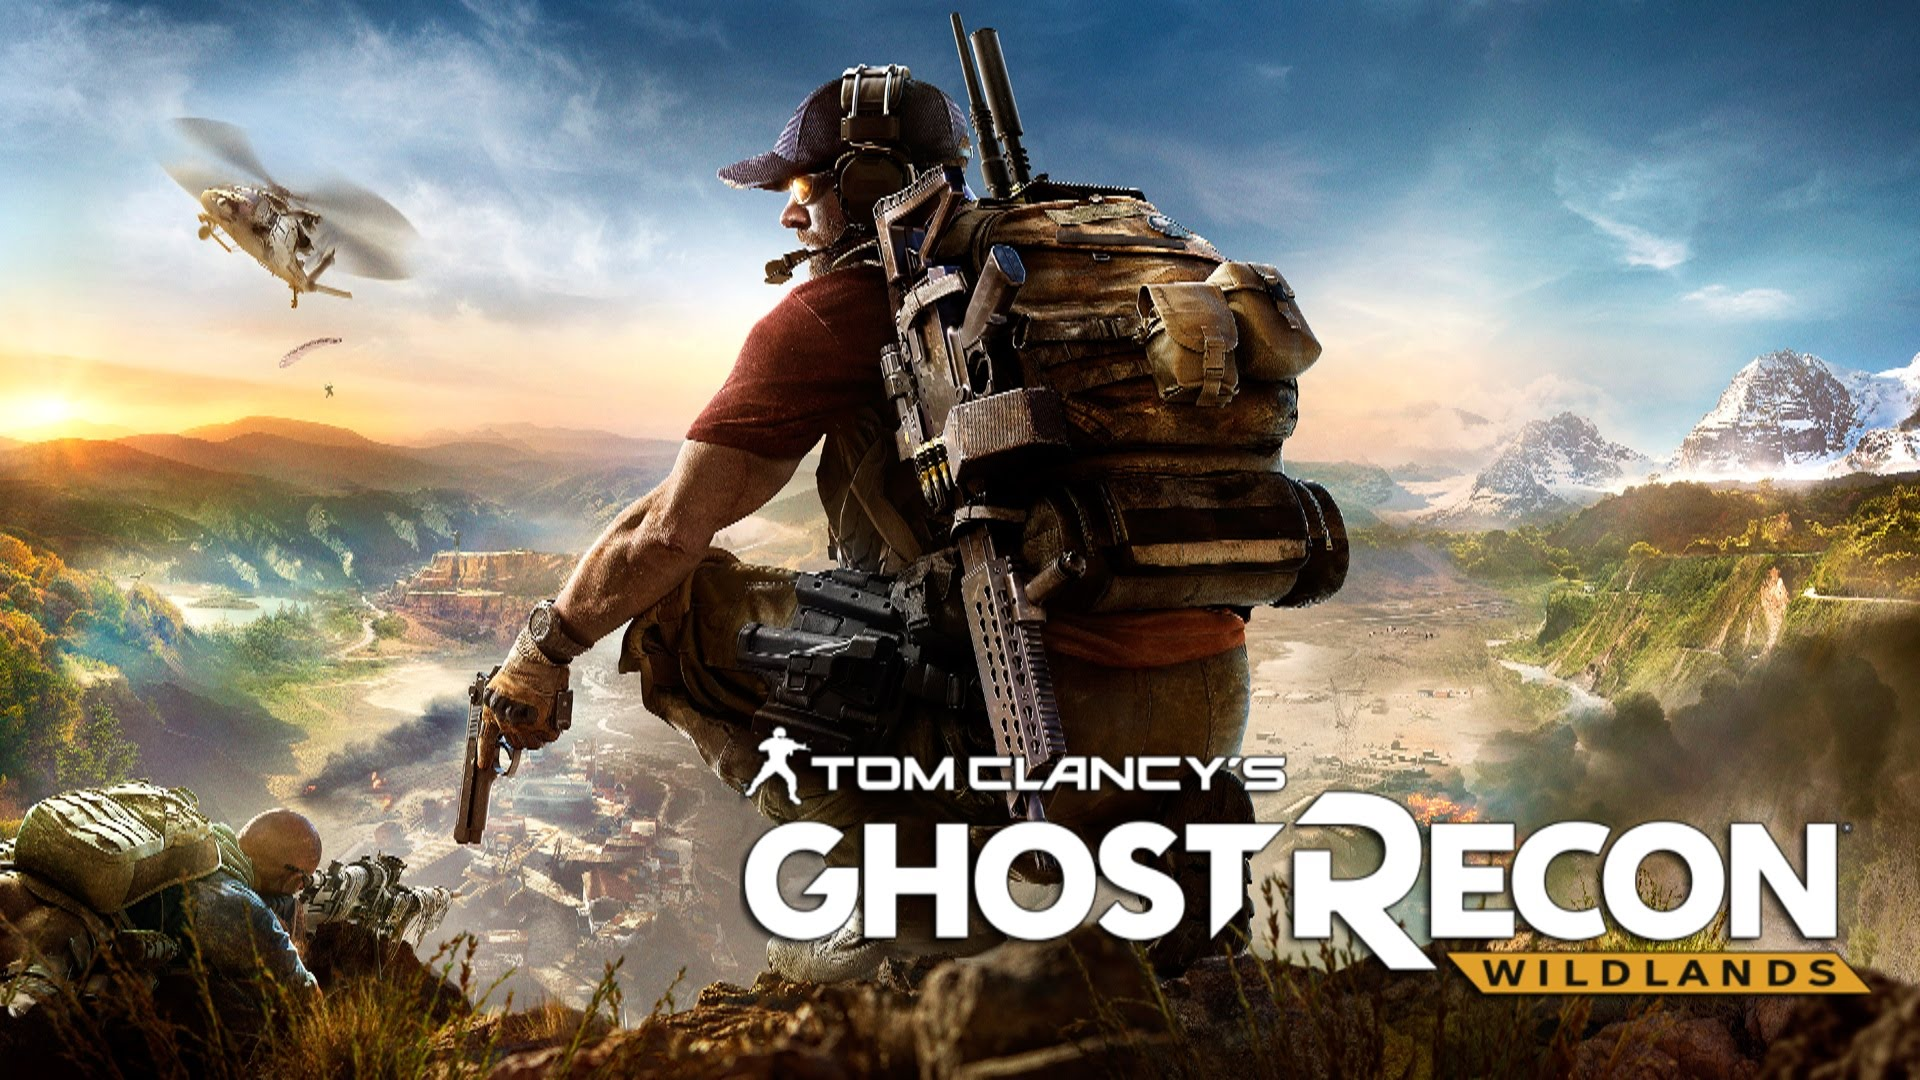 Tom Clancy's Ghost Recon Wildlands Open Beta Has Begun